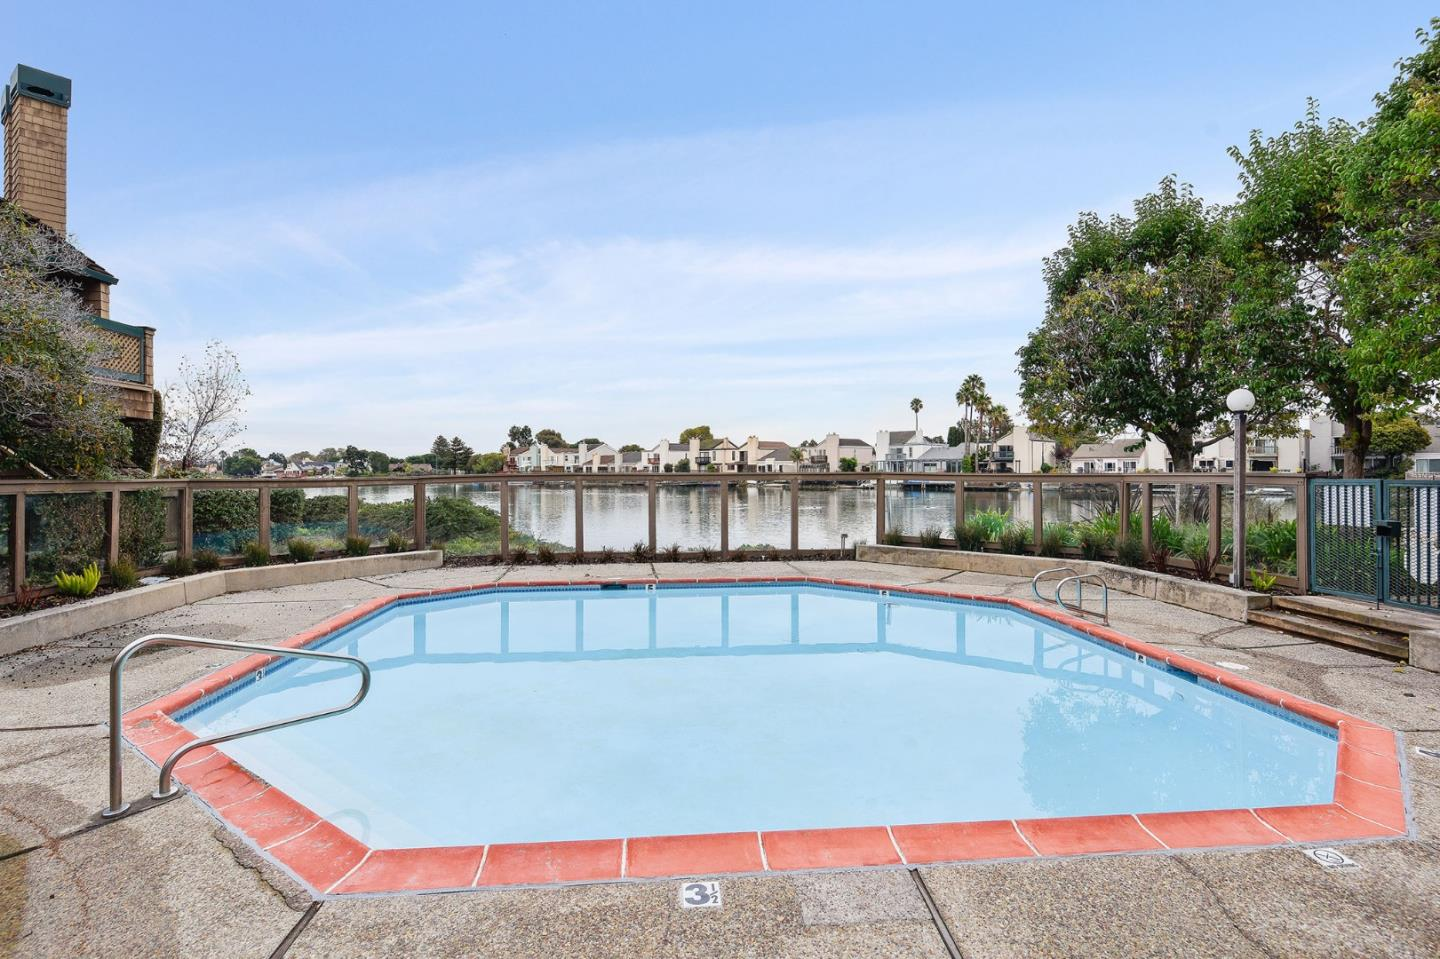 61 Pelican Lane Redwood Shores, CA 94065 - MLS #: ML81732935